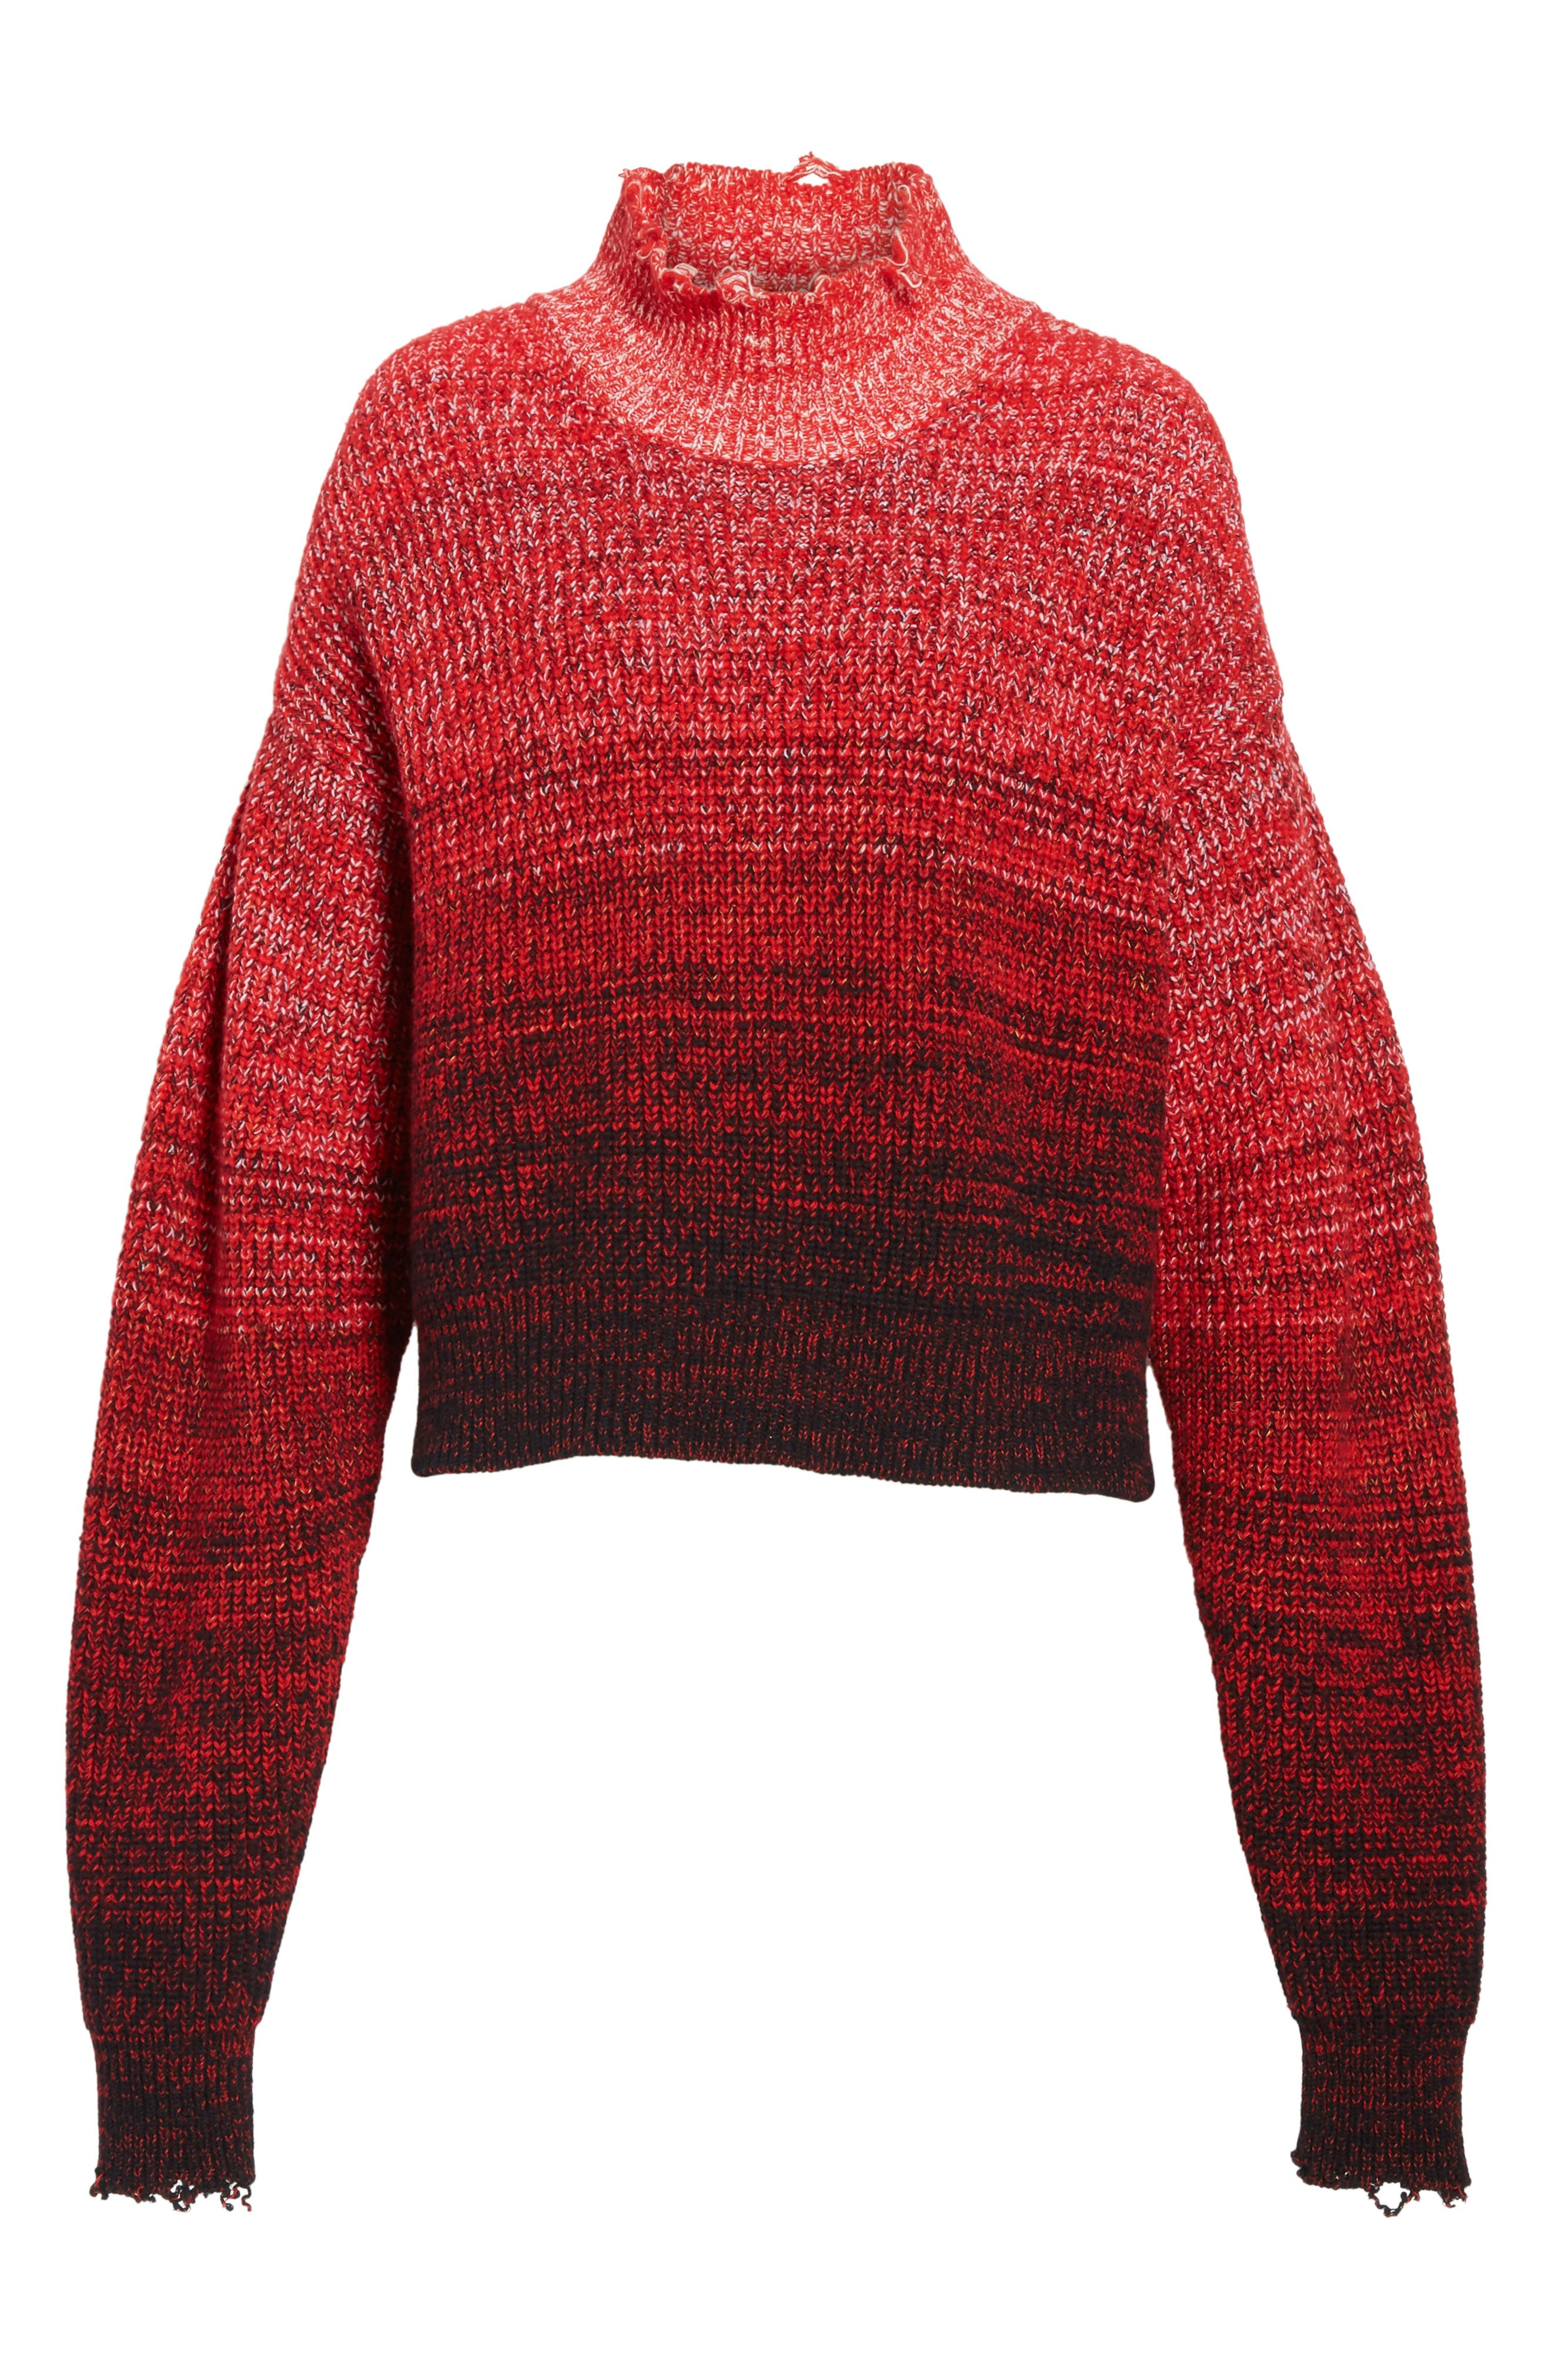 Distressed Marled Patchwork Turtleneck Sweater,                             Alternate thumbnail 6, color,                             Siren